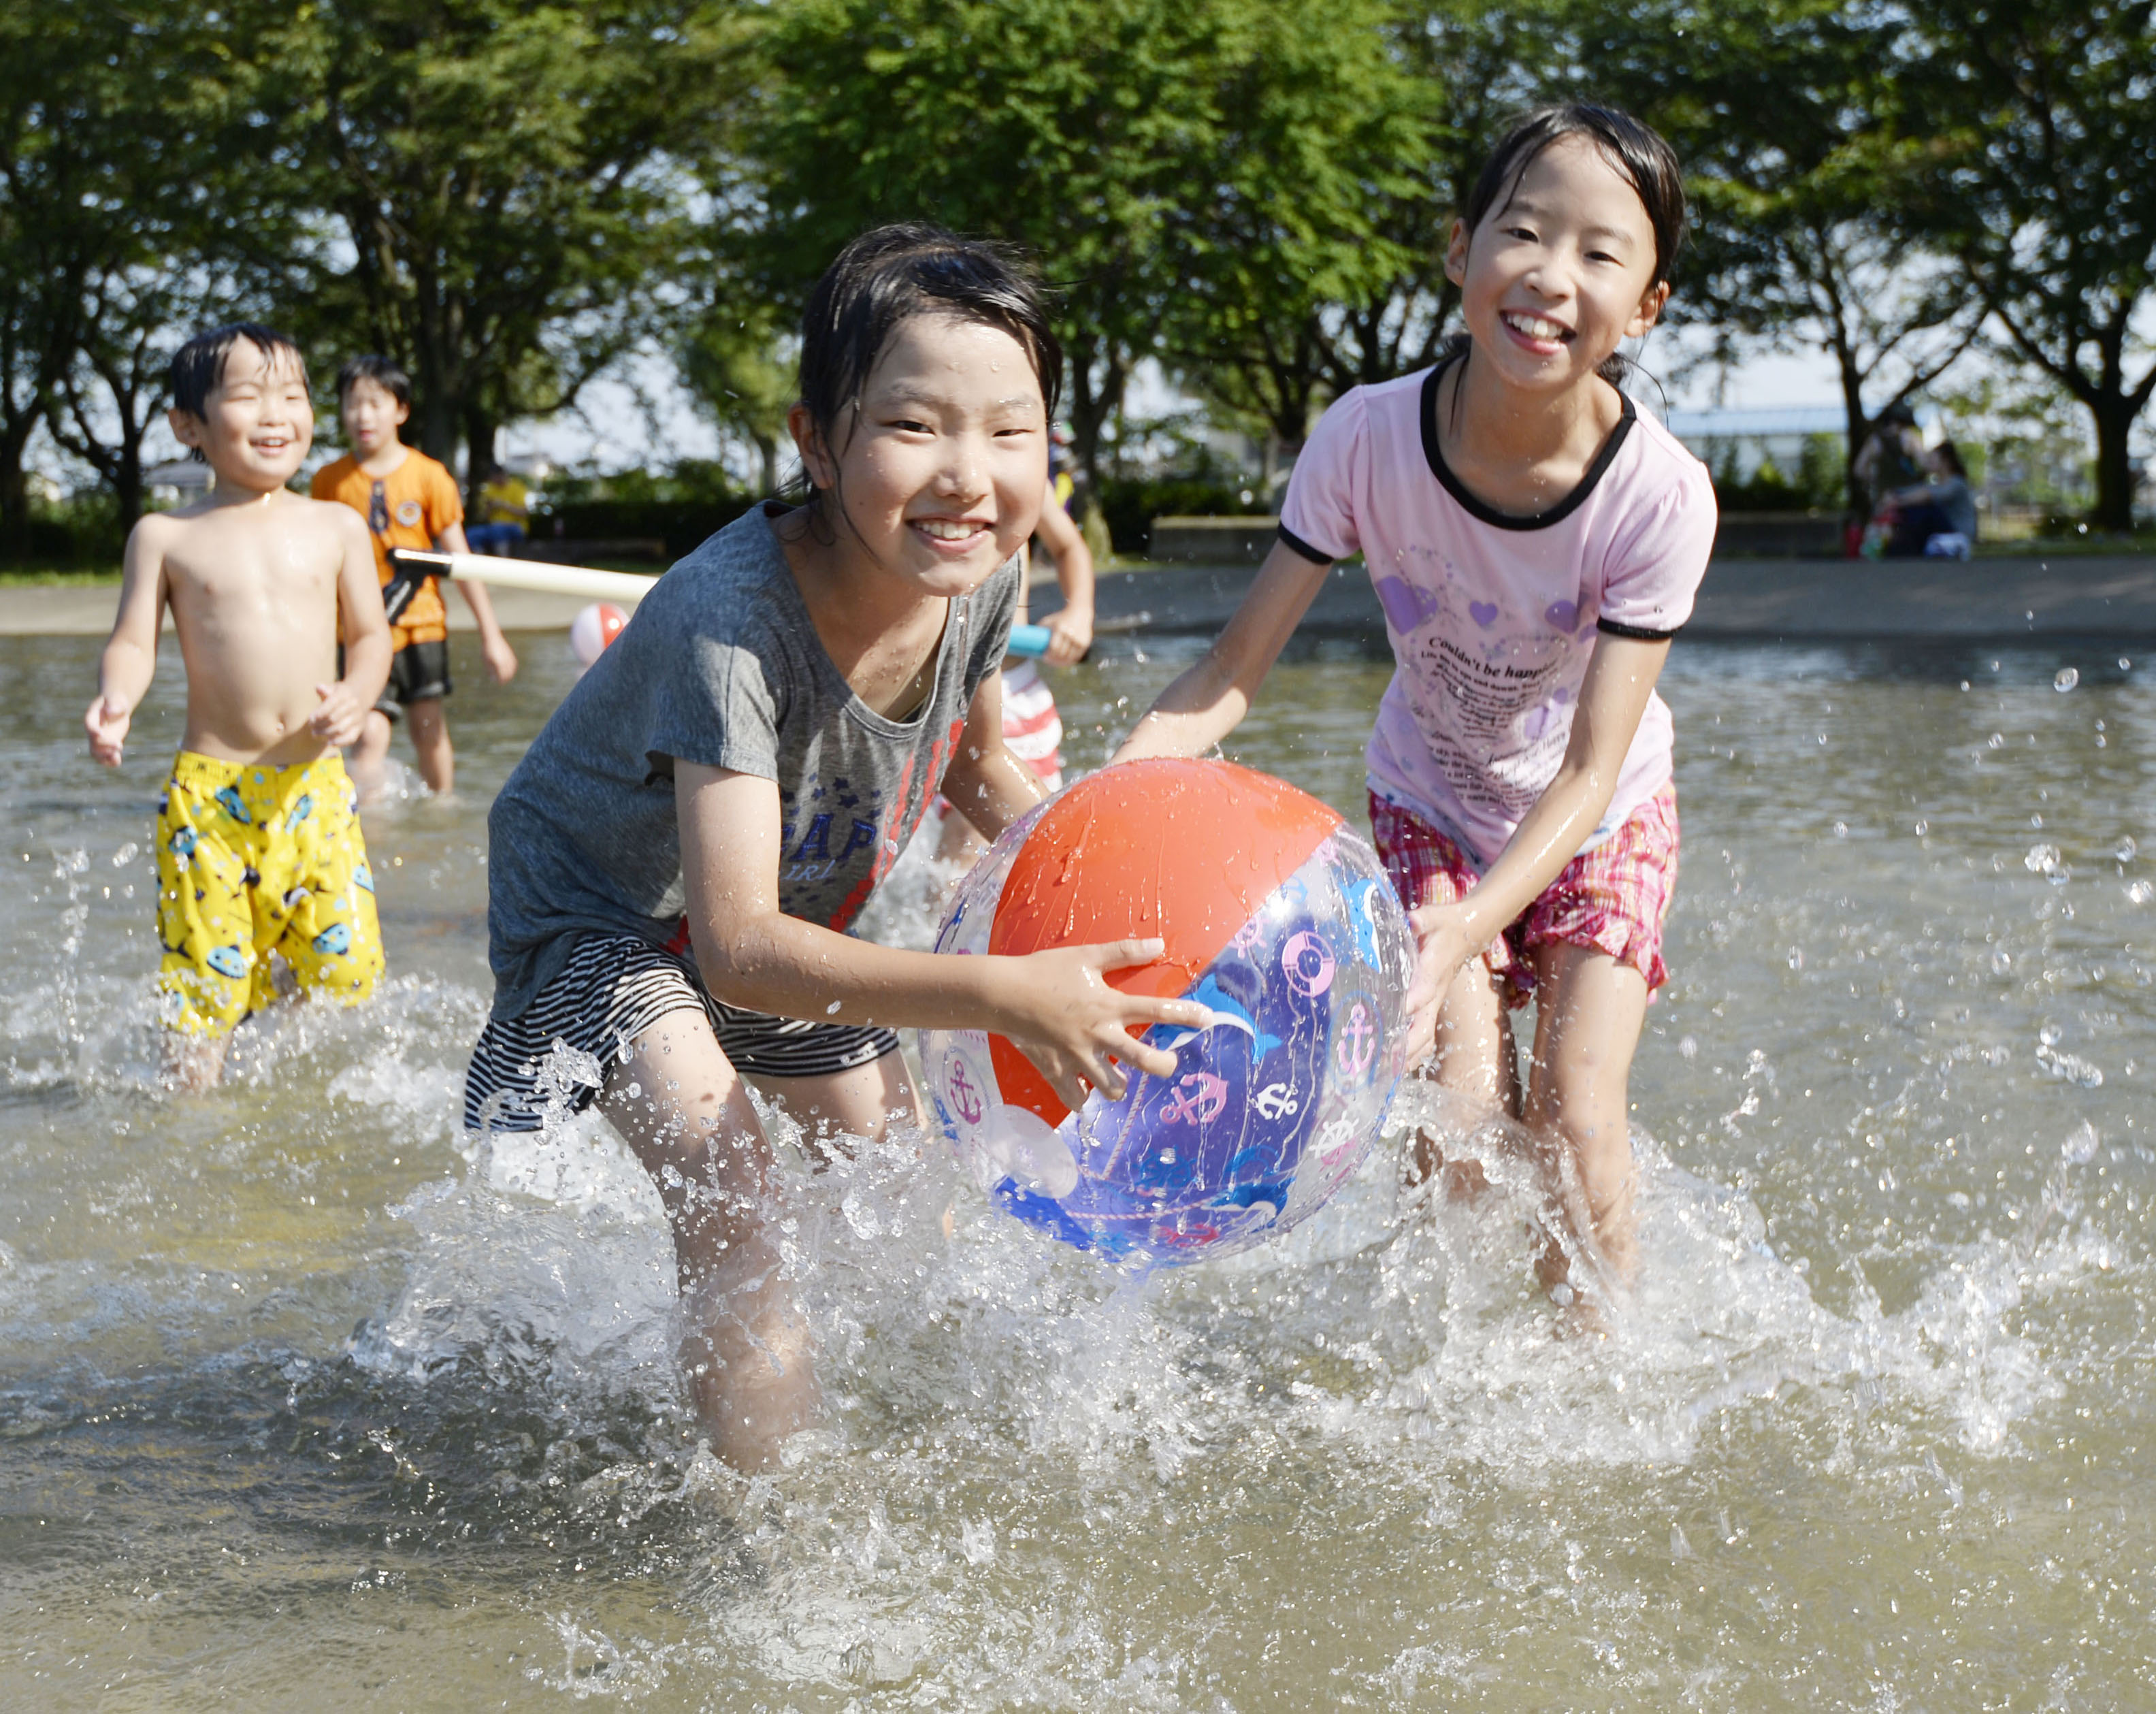 Children play in a park in Tatebayashi, Gunma Prefecture, which on June 18 was the first city in Japan to observe a temperature of 35 degrees or higher this year. | KYODO